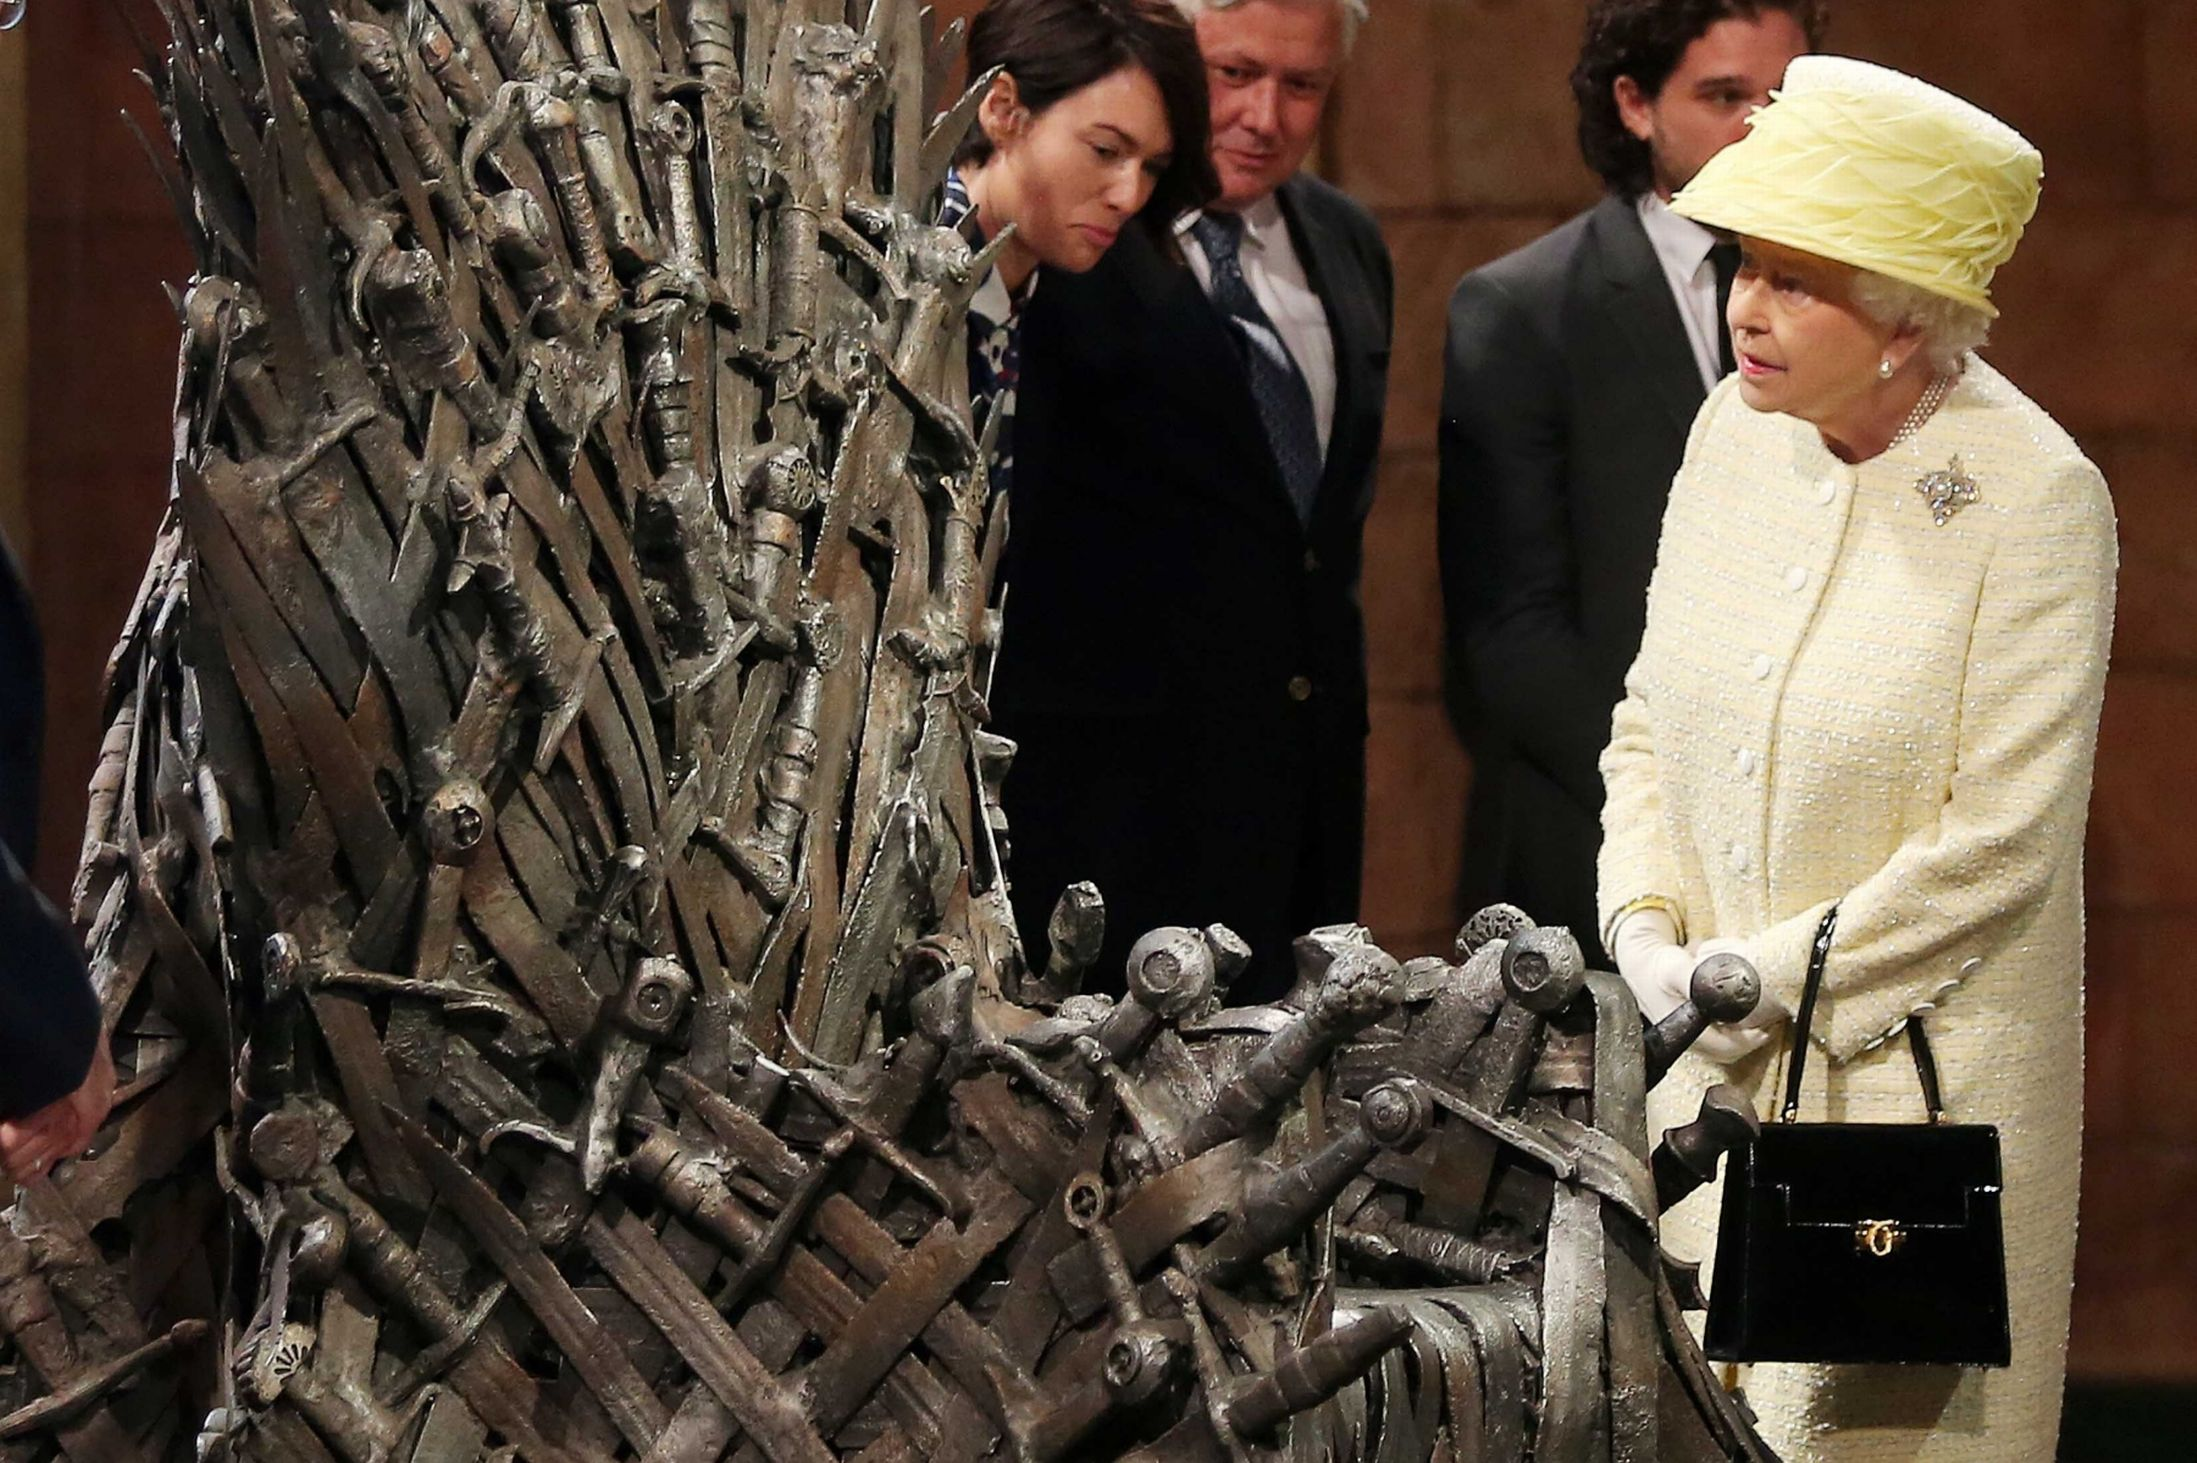 Queen Elizabeth II and The Iron Throne